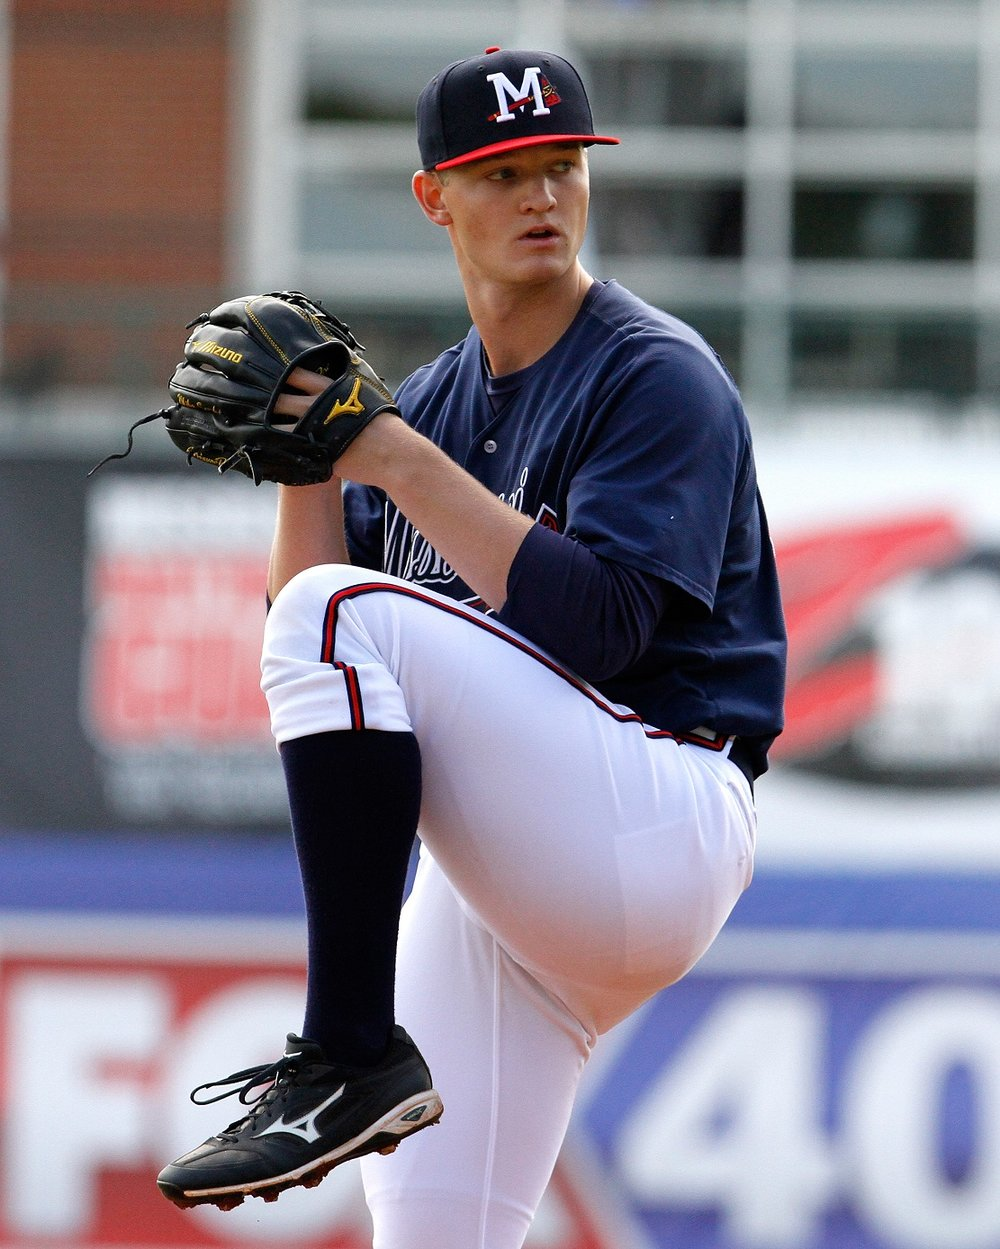 Former Calgary PBF Redbirds' RHP Mike Soroka (Calgary, Alta.) pitched a complete-game, seven-inning shutout for the Gwinett Stripers